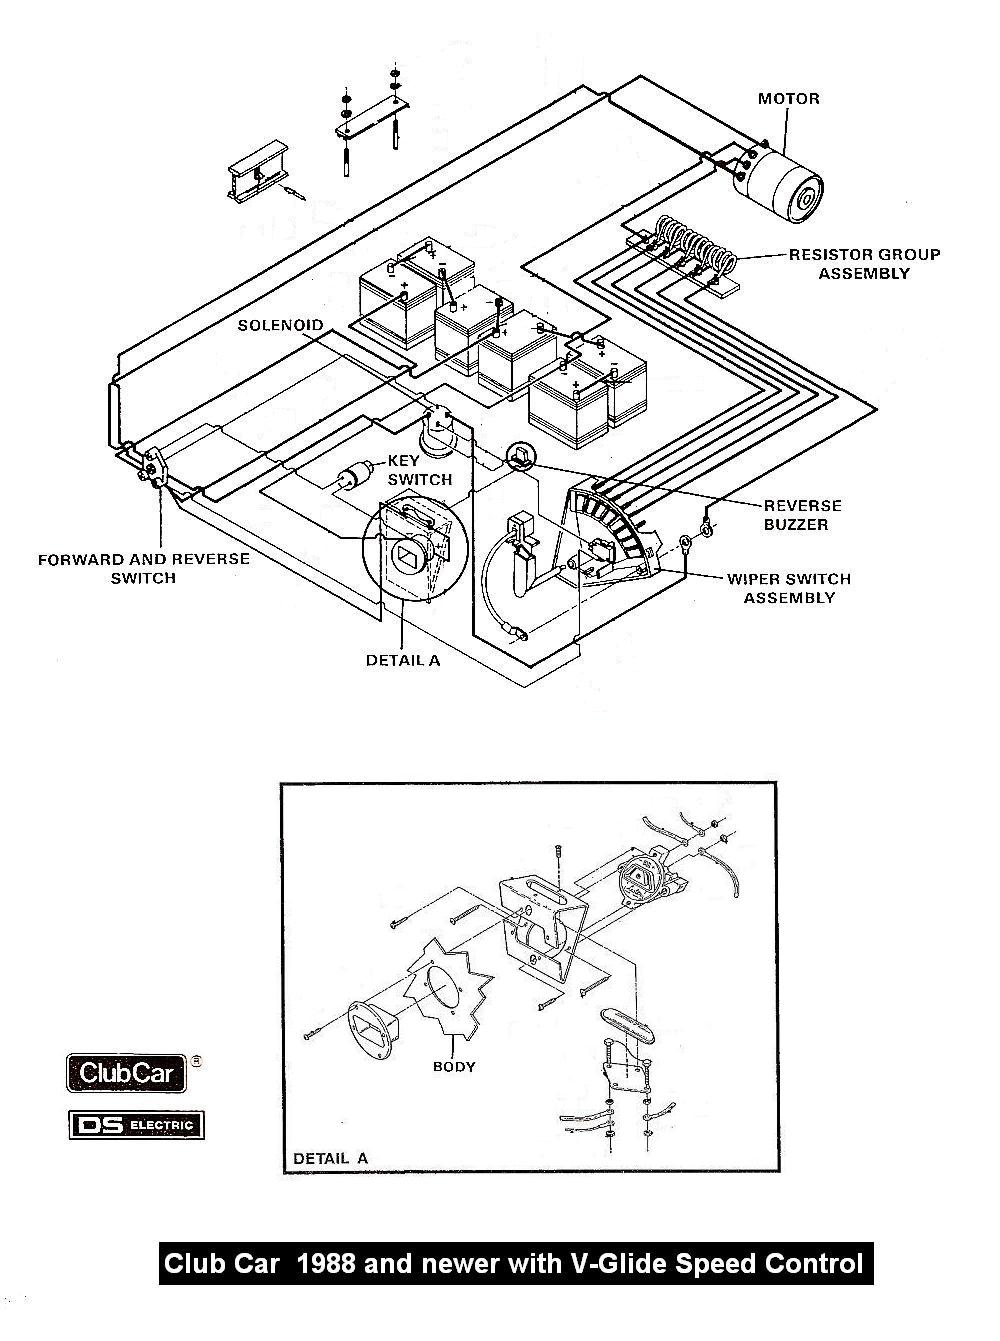 Club Car Golf Cart Wiring Schematic For 1988 - Wiring Diagram •